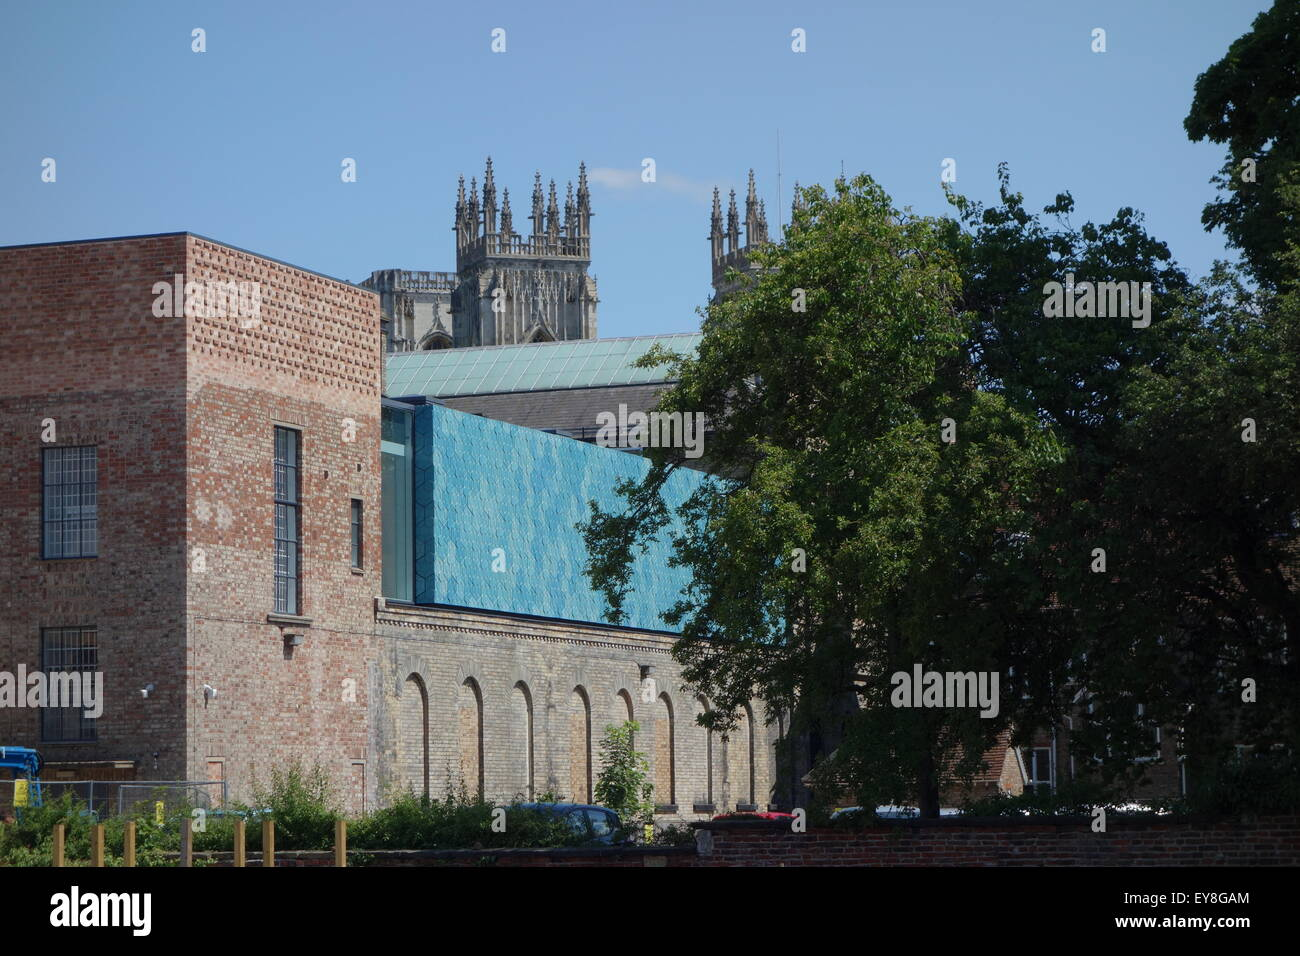 rear view refurbished York City Art Gallery reopened August 2015 late Kathryn Findlay's last commission with - Stock Image